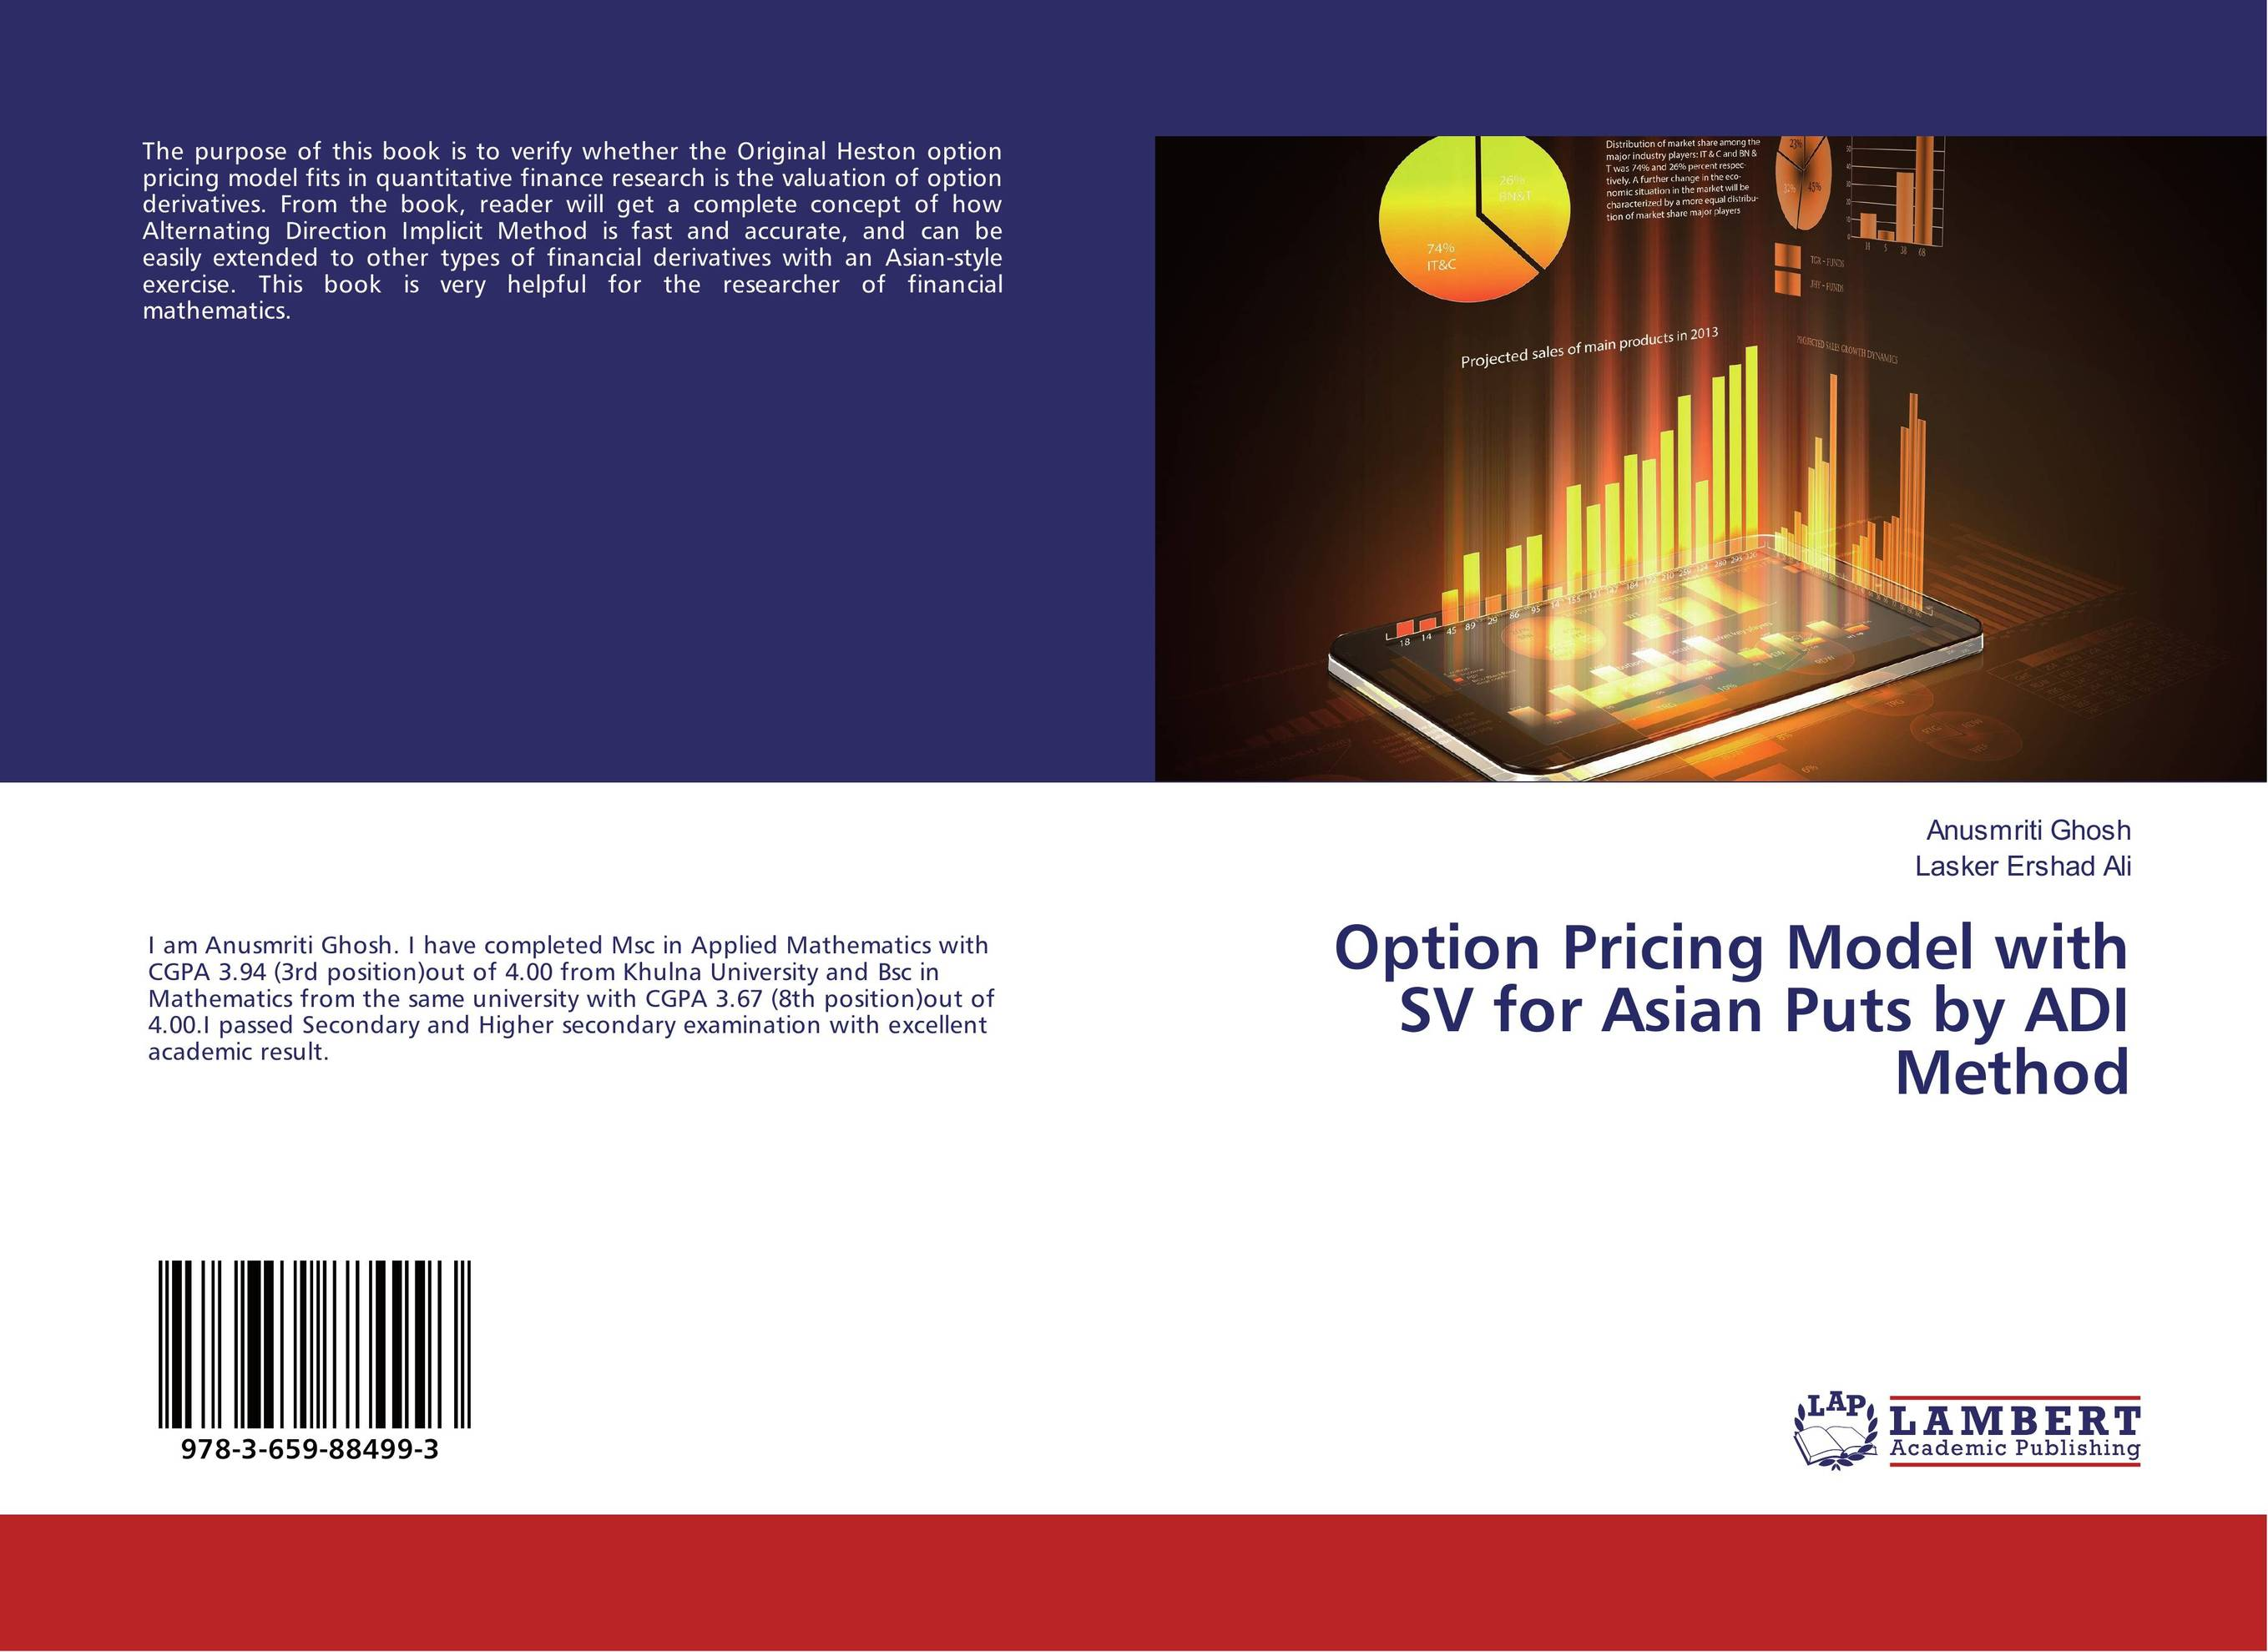 Option Pricing Model with SV for Asian Puts by ADI Method